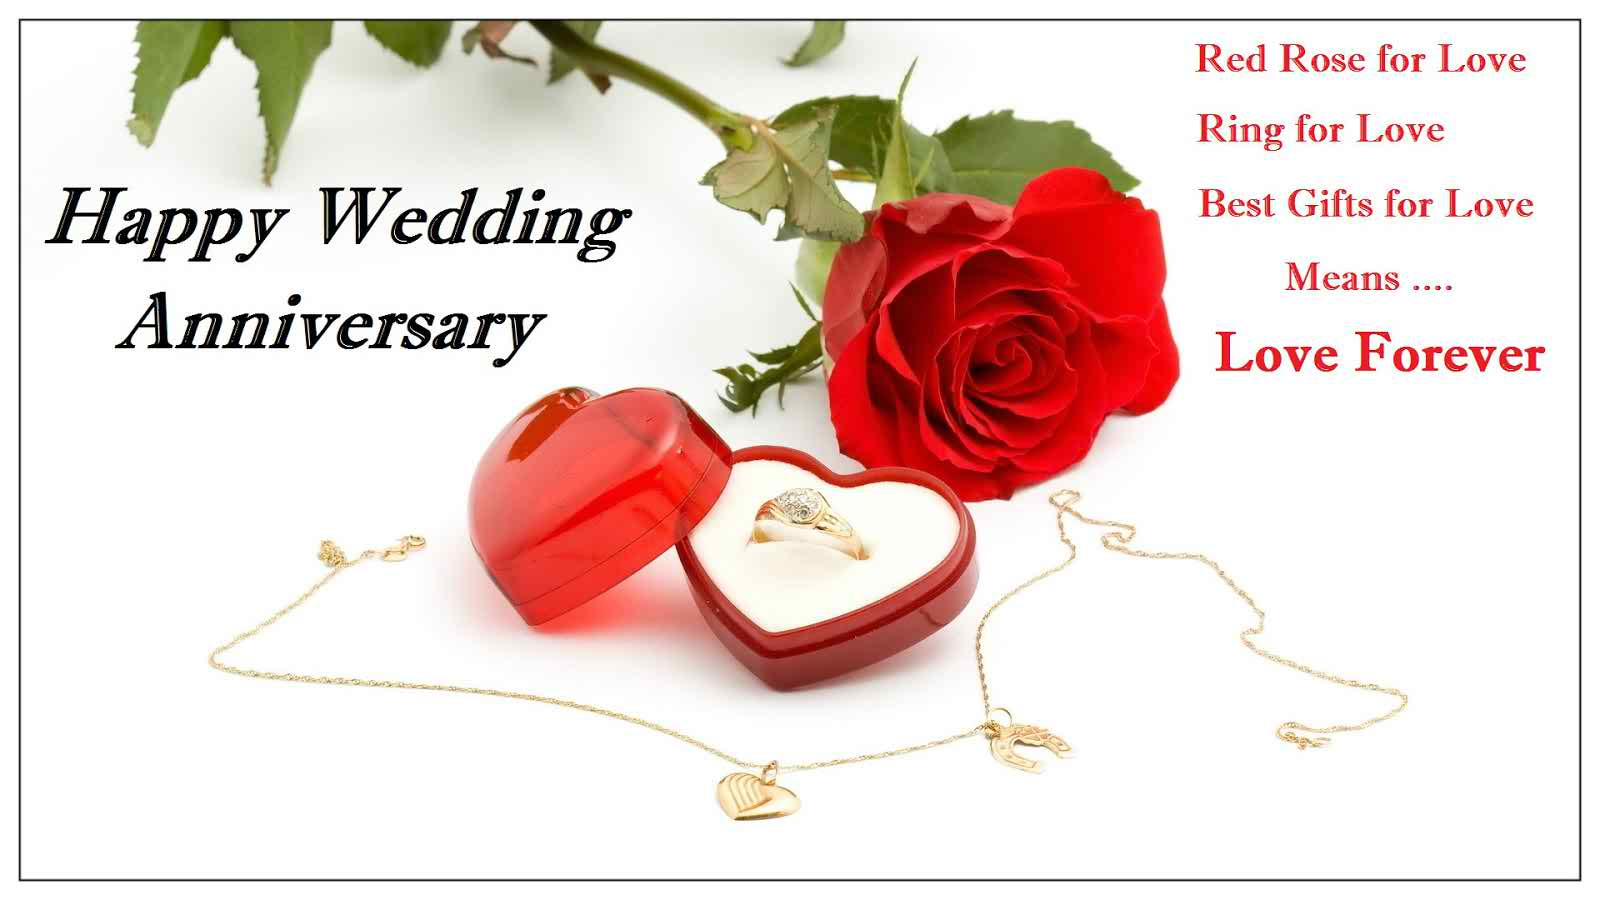 Wallpaper download marriage anniversary - Read More Sad Images